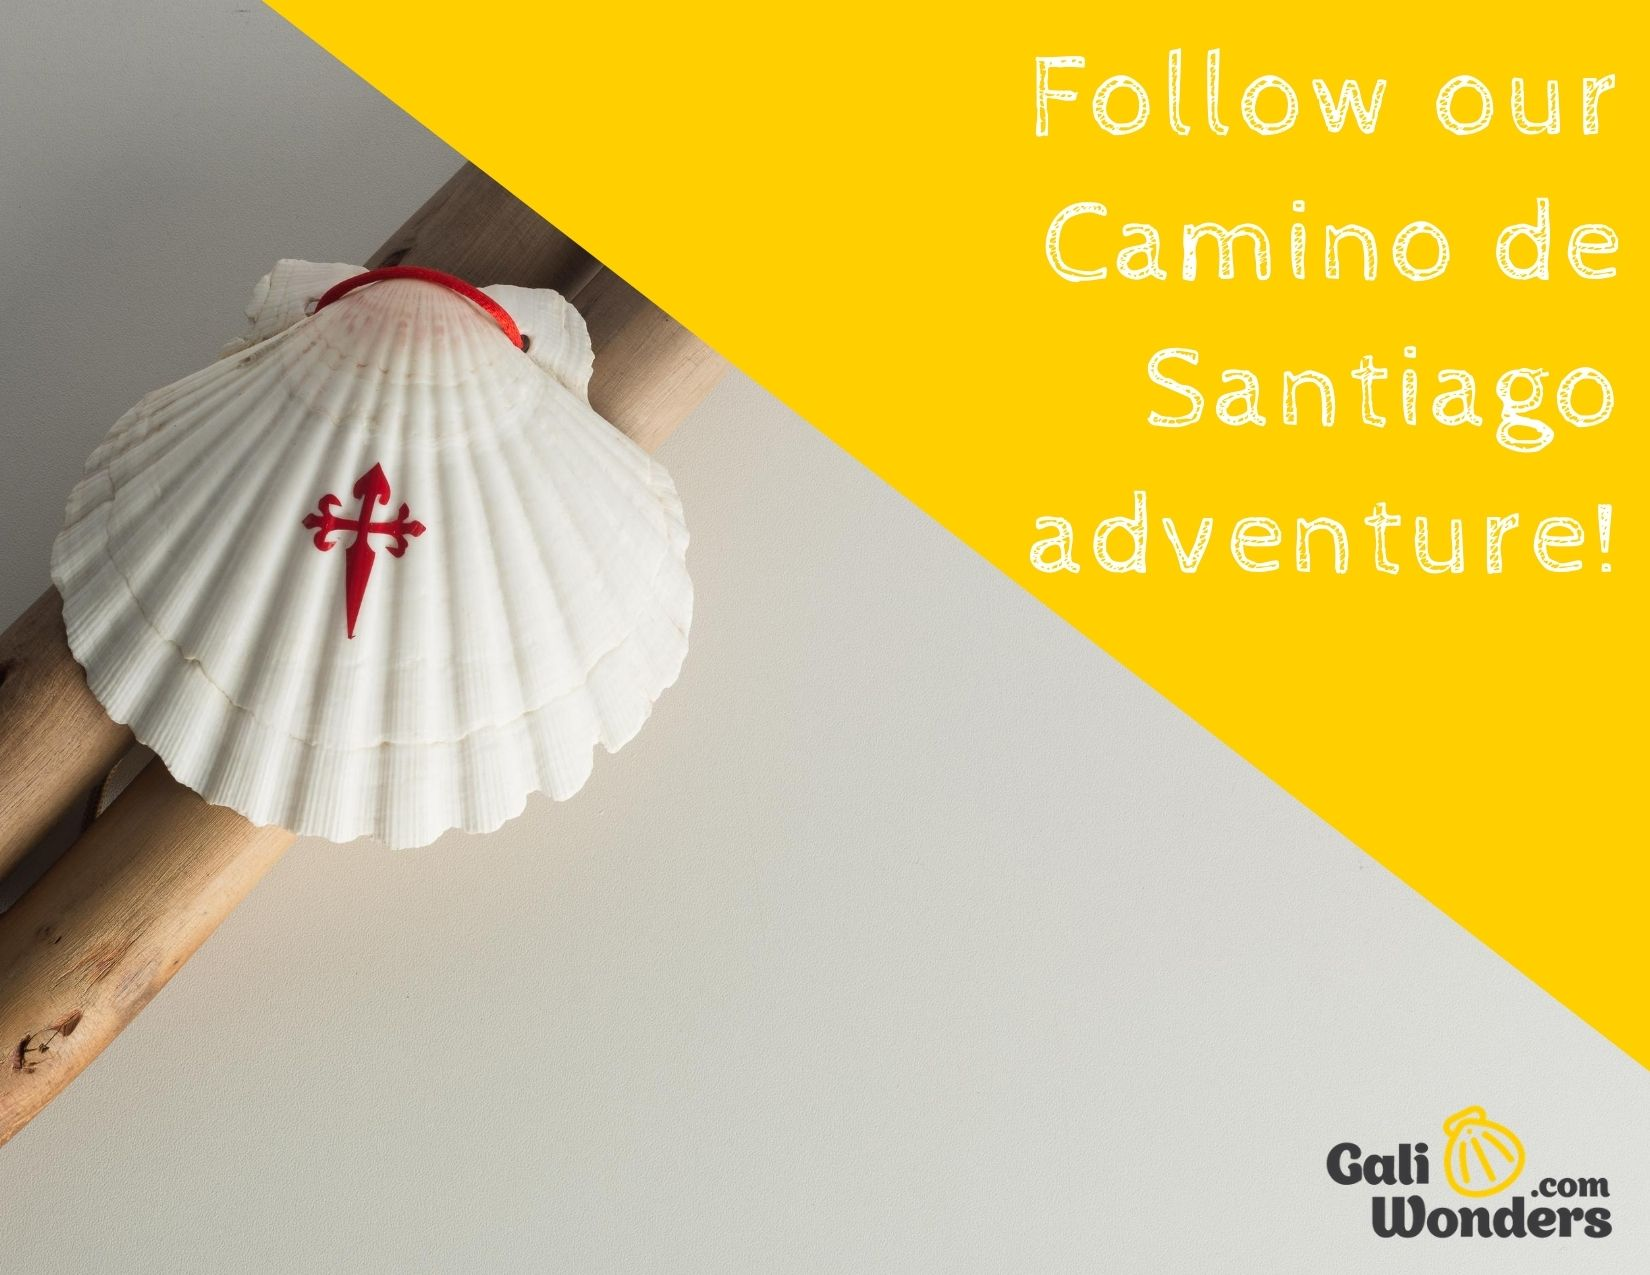 Follow Our Camino Adventure Galiwonders